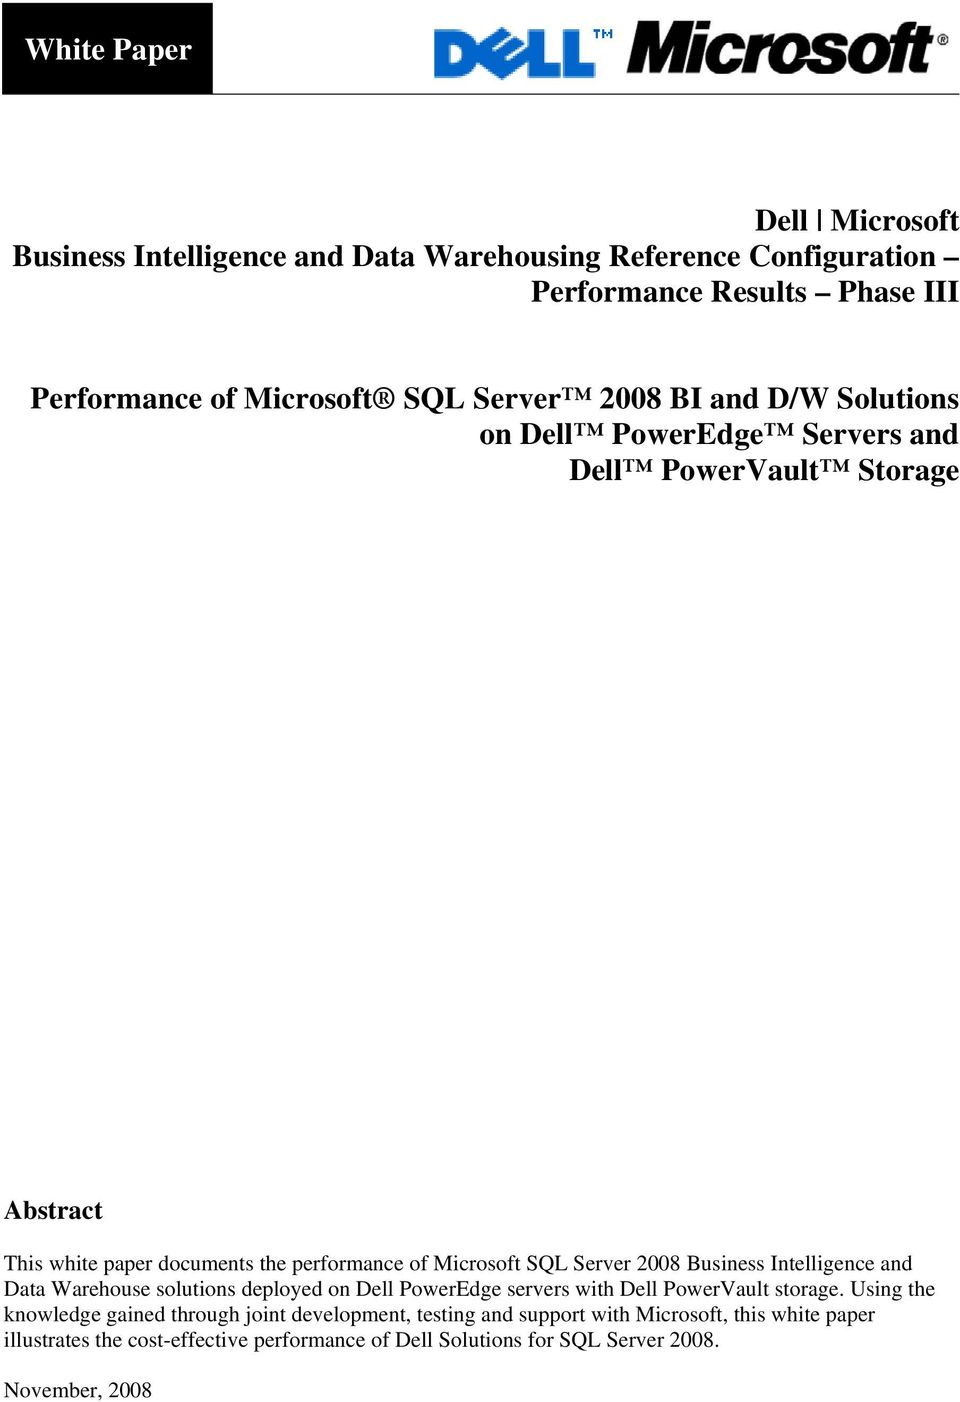 2008 Business Intelligence and Data Warehouse solutions deployed on Dell PowerEdge servers with Dell PowerVault storage.